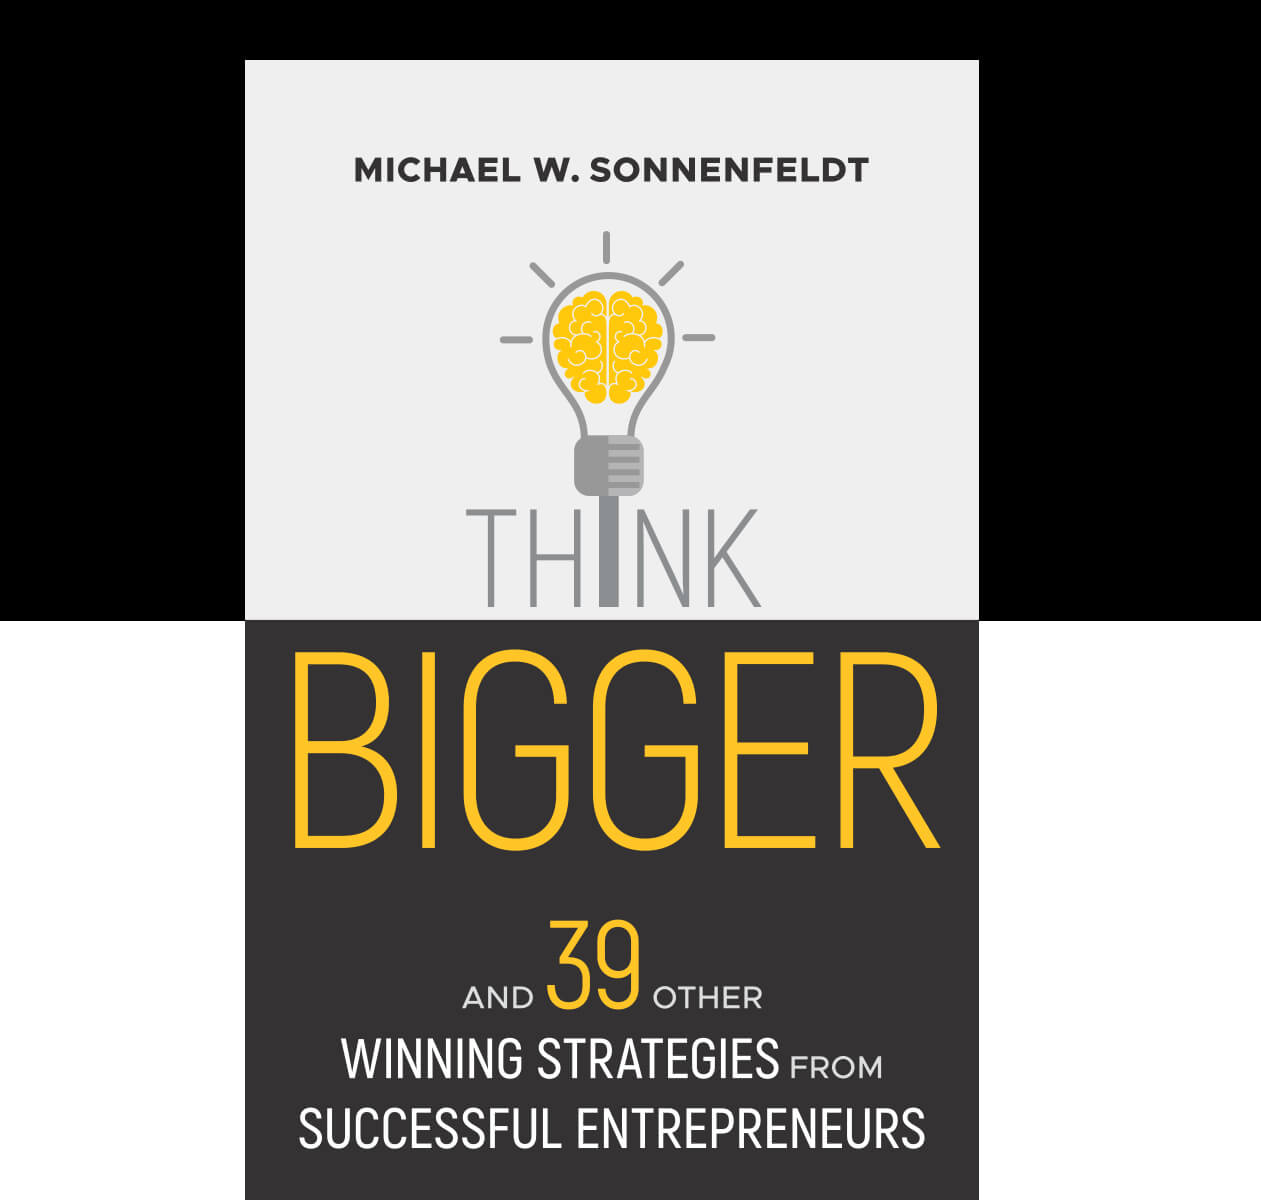 THINK BIGGER: A CONVERSATION WITH MICHAEL SONNENFELDT ABOUT HIS NEW BOOK